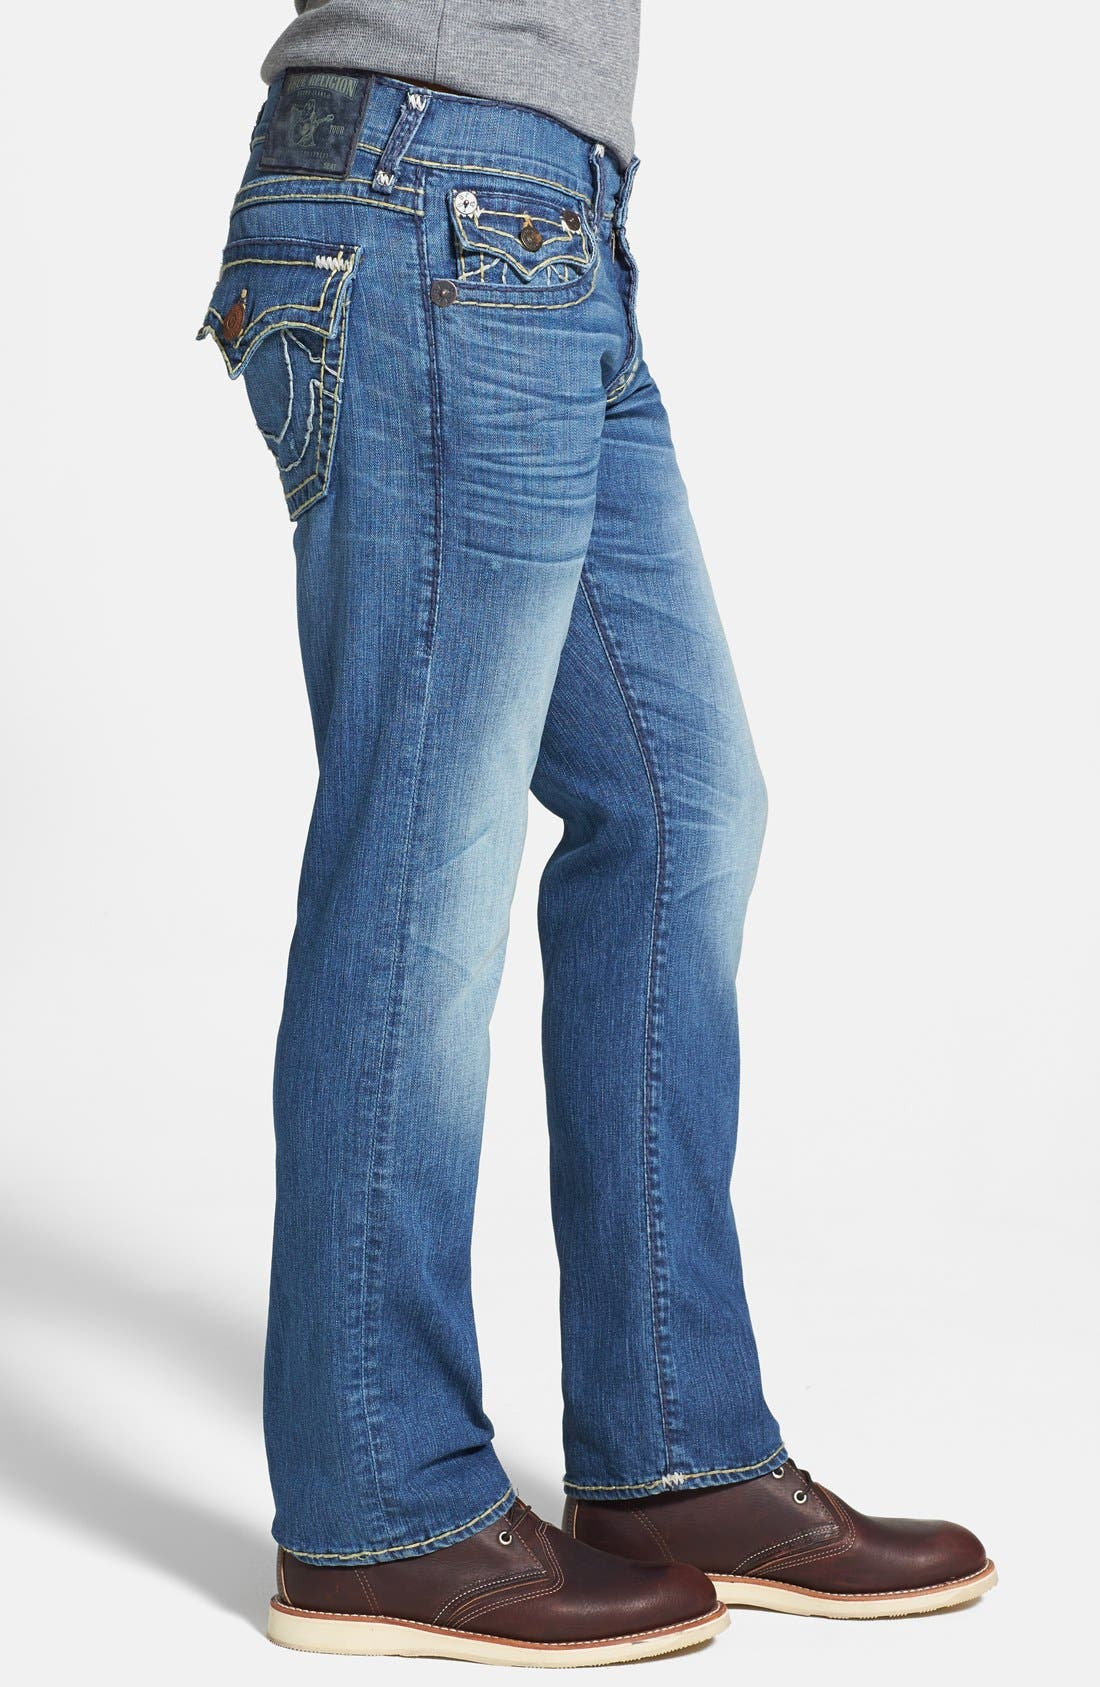 Alternate Image 3  - True Religion Brand Jeans 'Ricky' Relaxed Fit Jeans (Azwl Malibu Cruise)